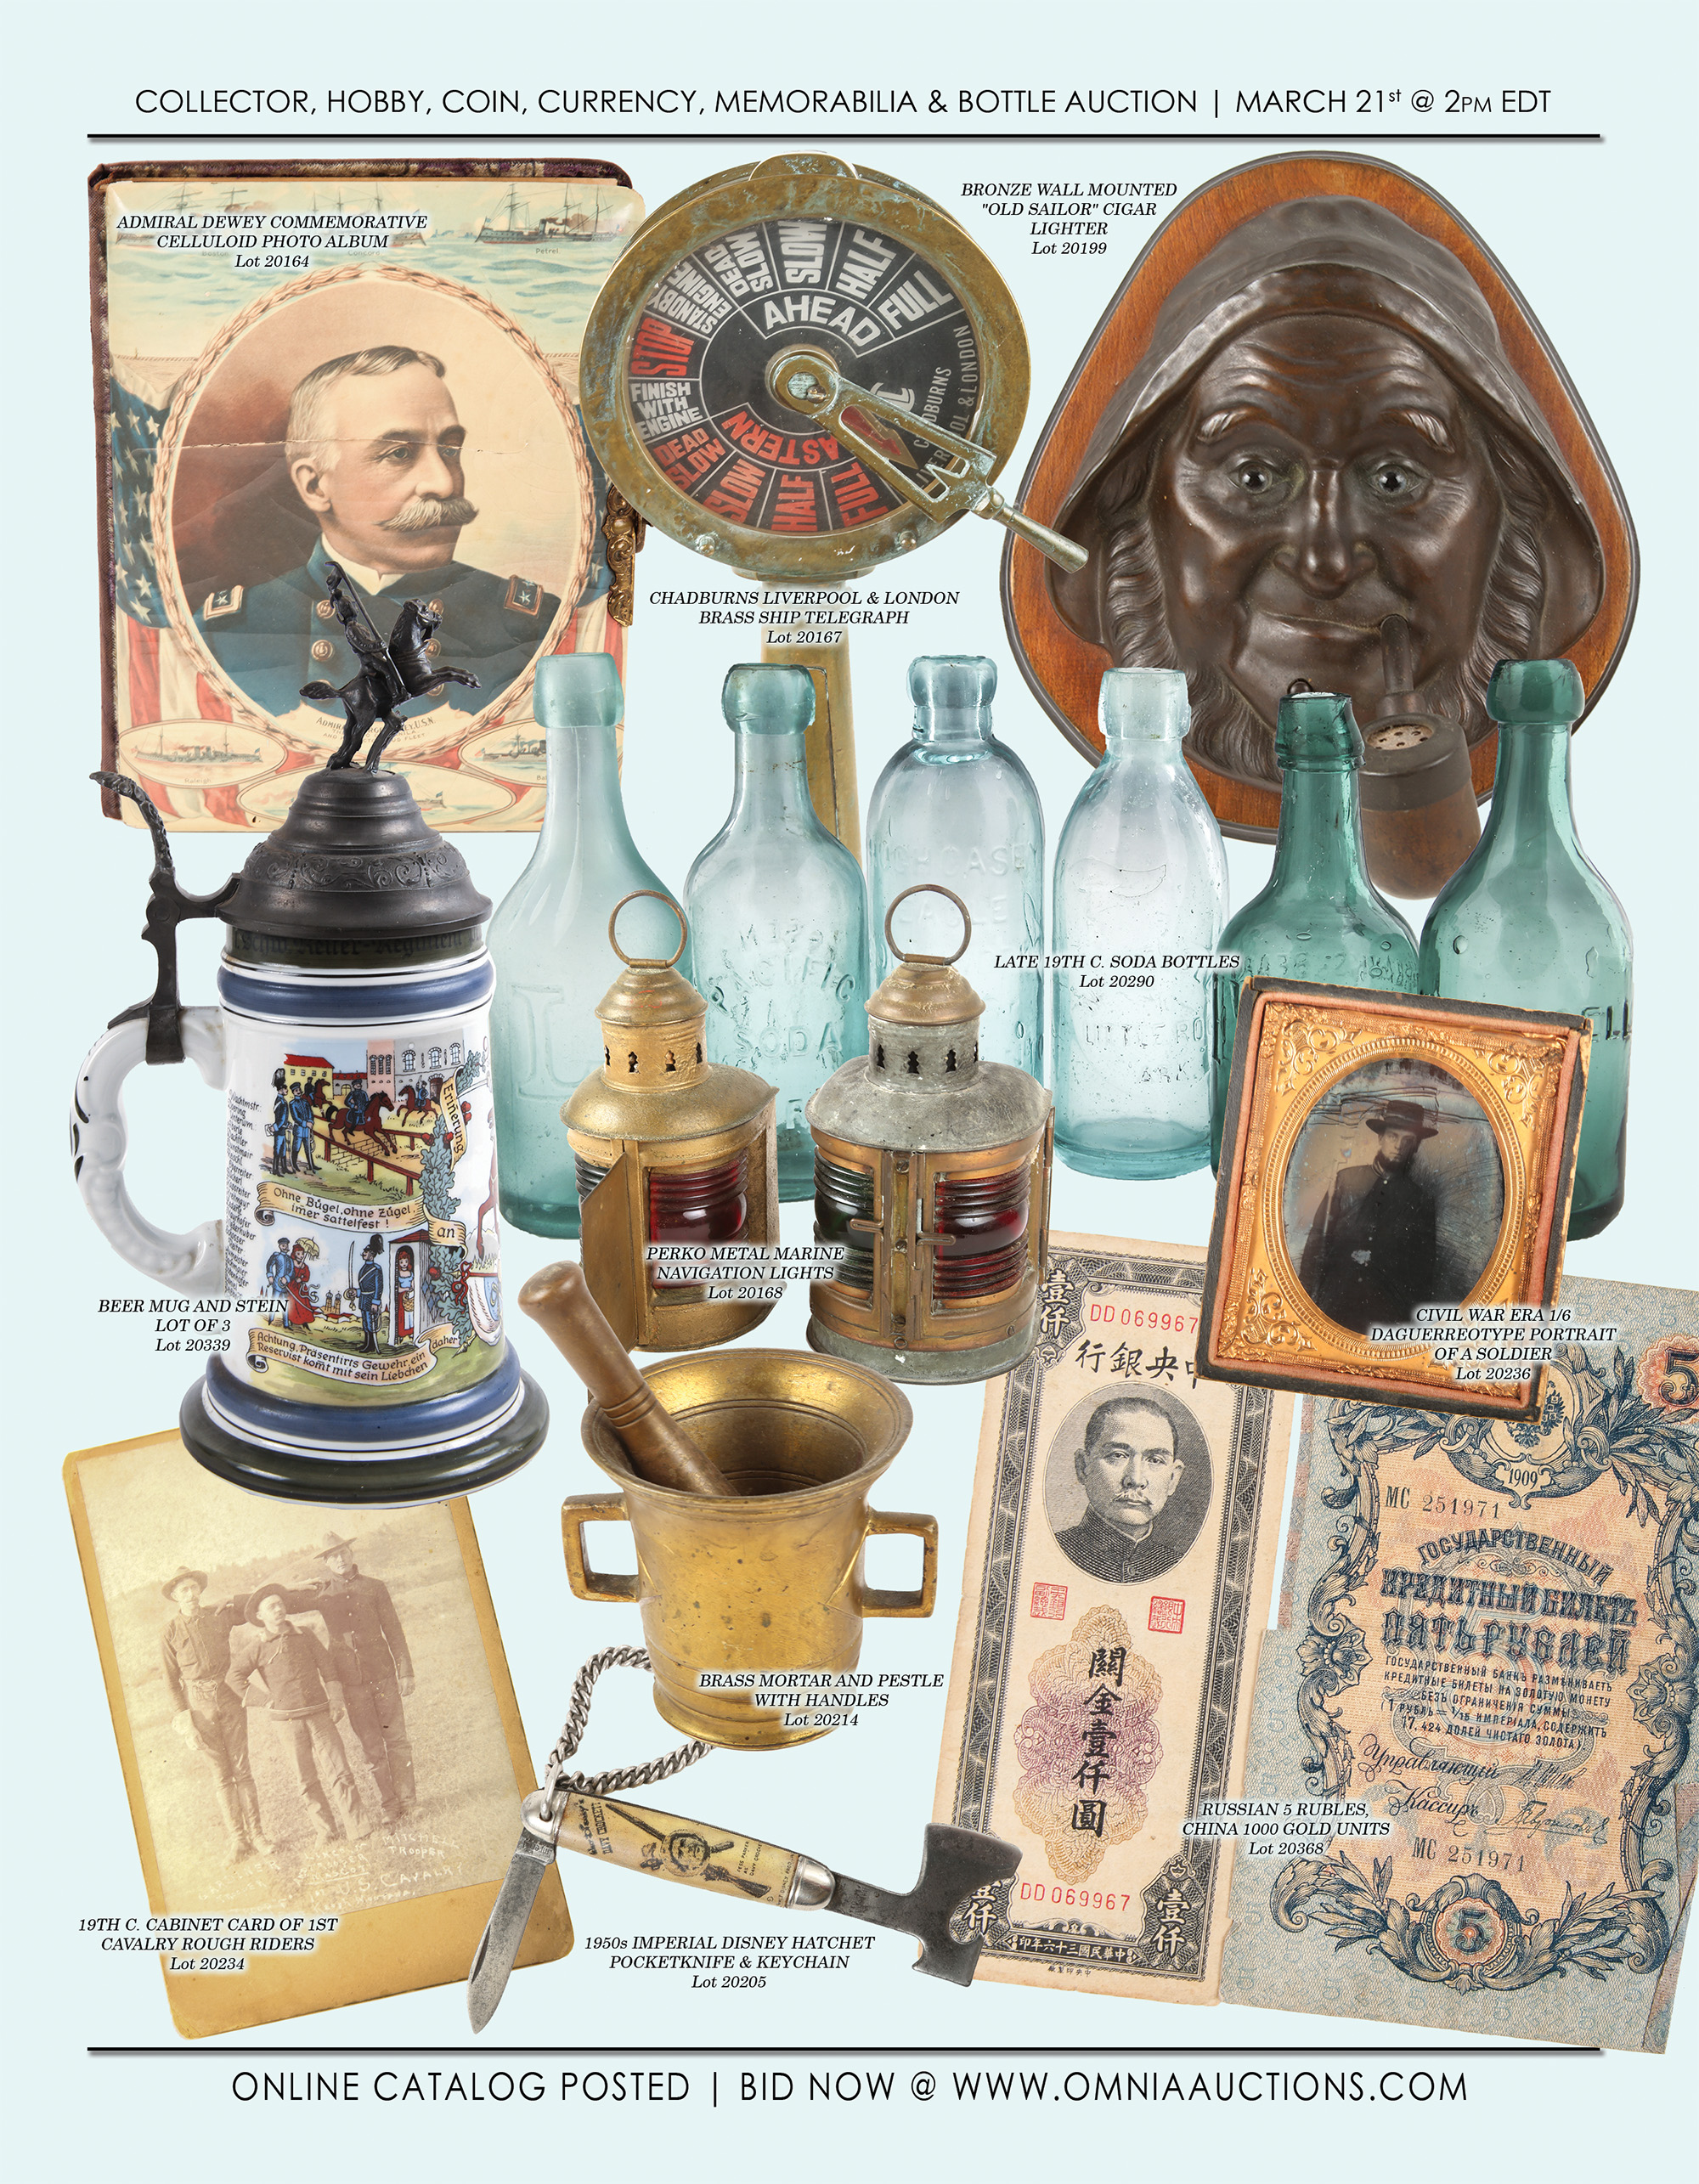 Collector, Hobby, Coin, Currency, Sport, Memorabilia & Bottle Auction